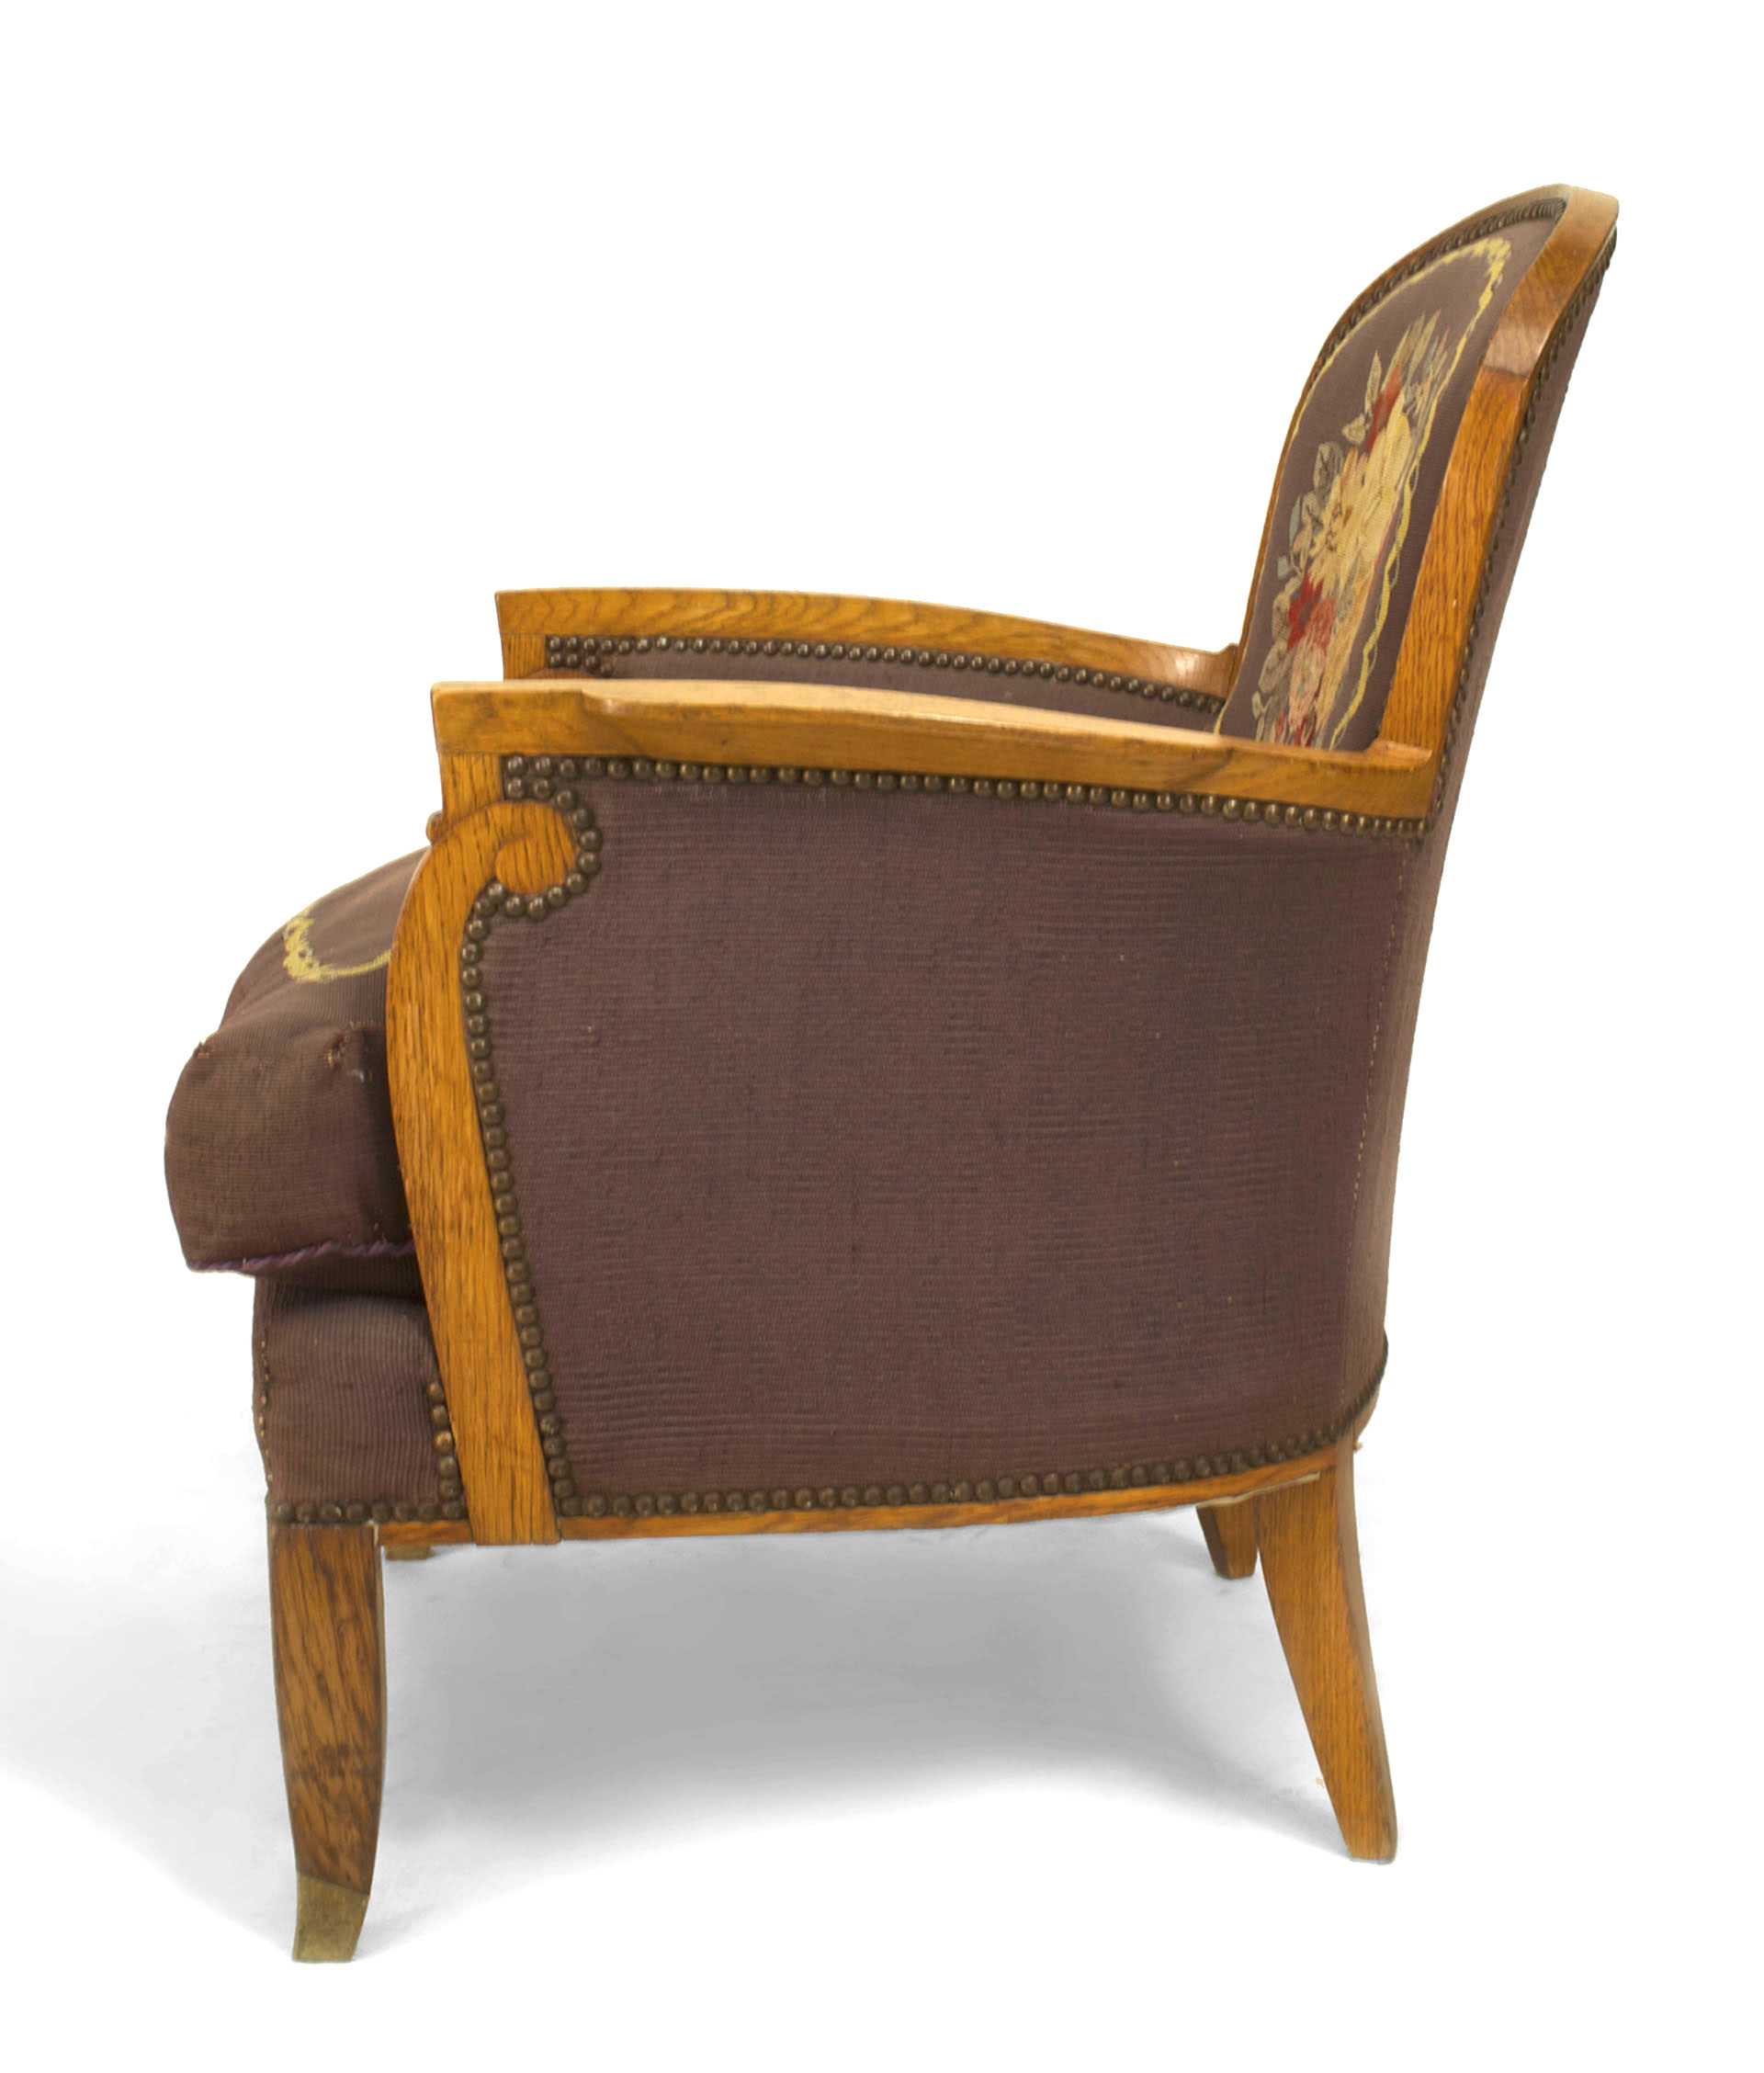 ... Art Deco Arm Chairs (bergeres) With Tapestry Upholstery Having A Round  Back U0026 Scroll Design Arm (by JULES LELEU) (c.1940) Ref: Decorateurs  Ensemble, ...